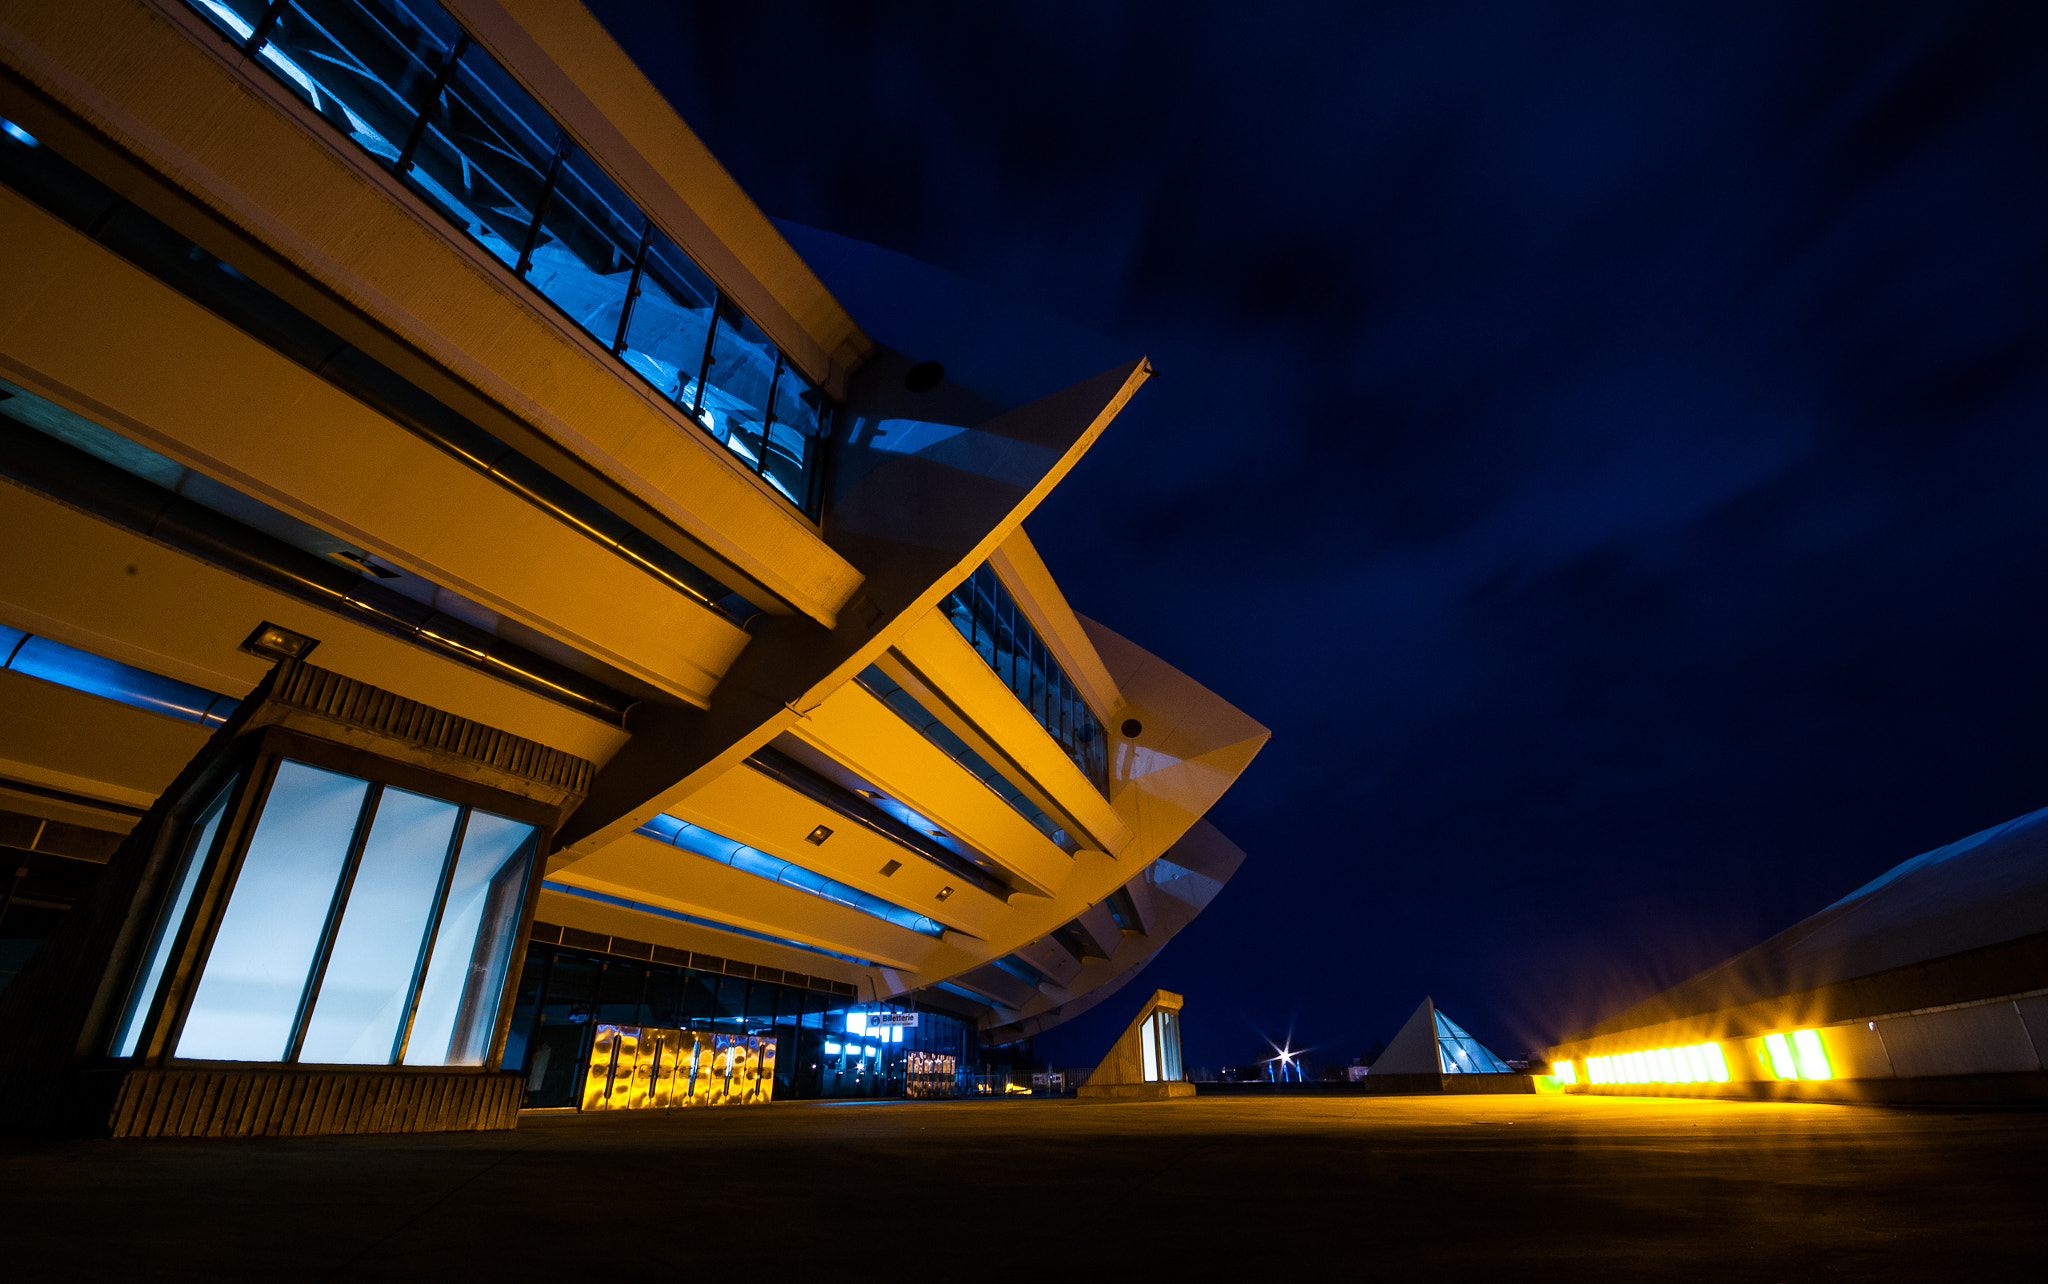 Photograph Spaceport Olympique by E K on 500px